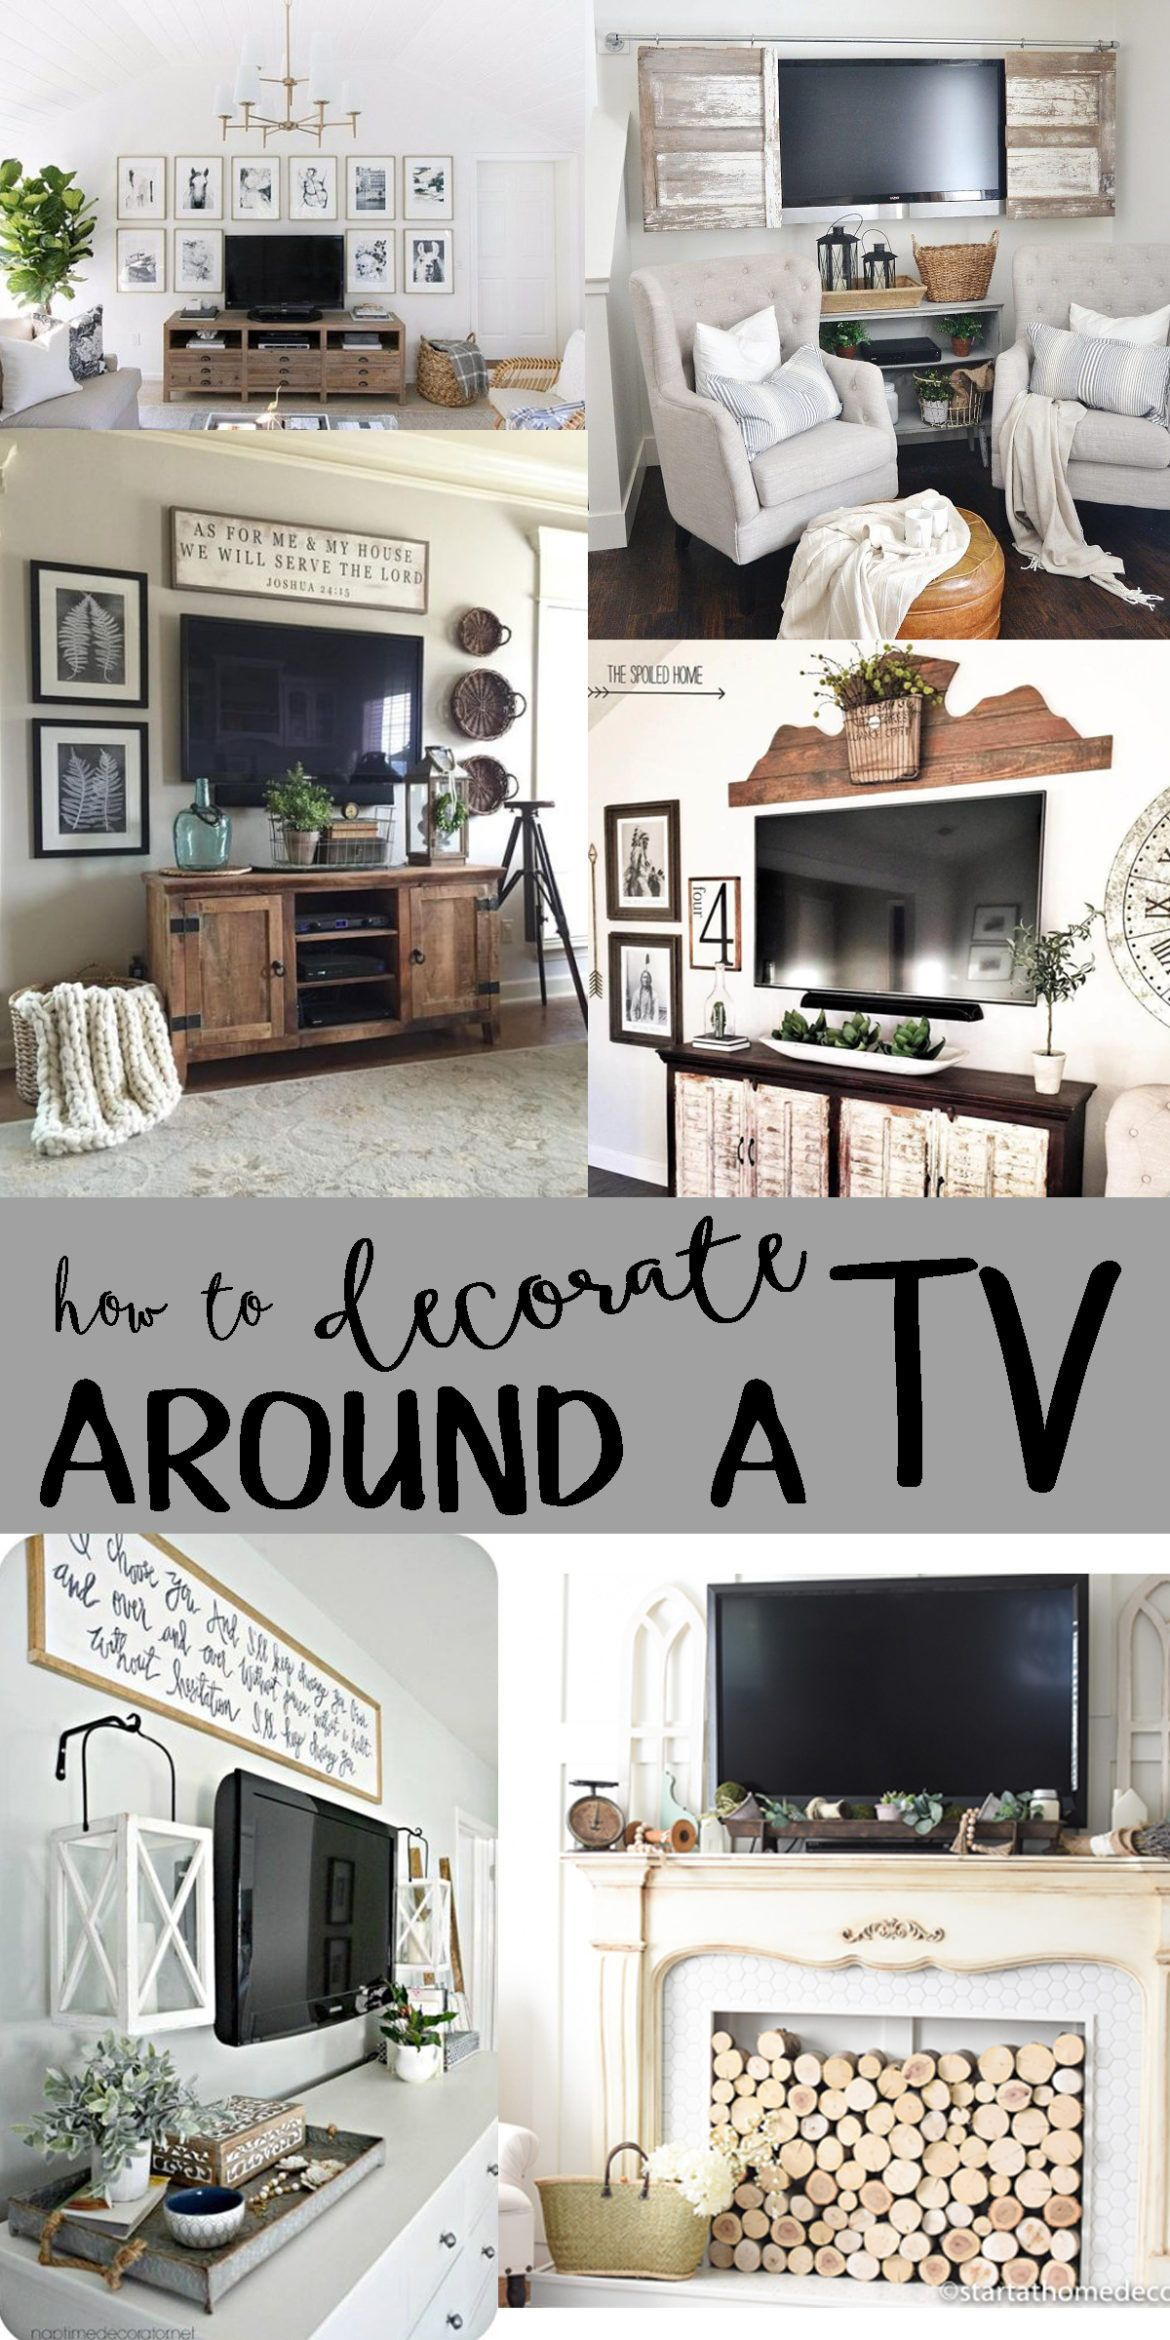 How to Decorate Around a TV images